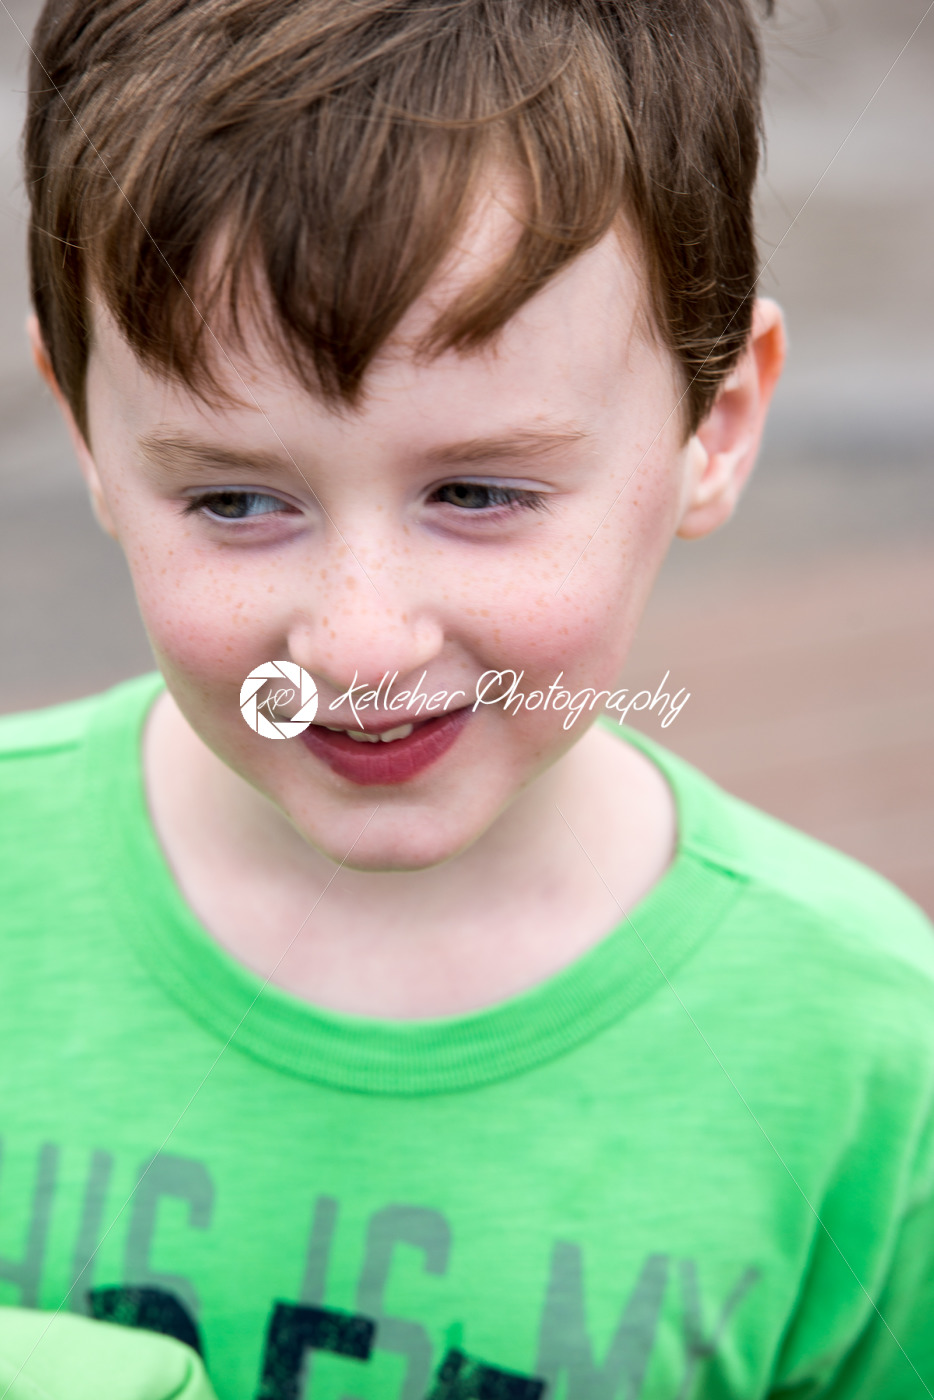 Young little boy portrait looking around - Kelleher Photography Store